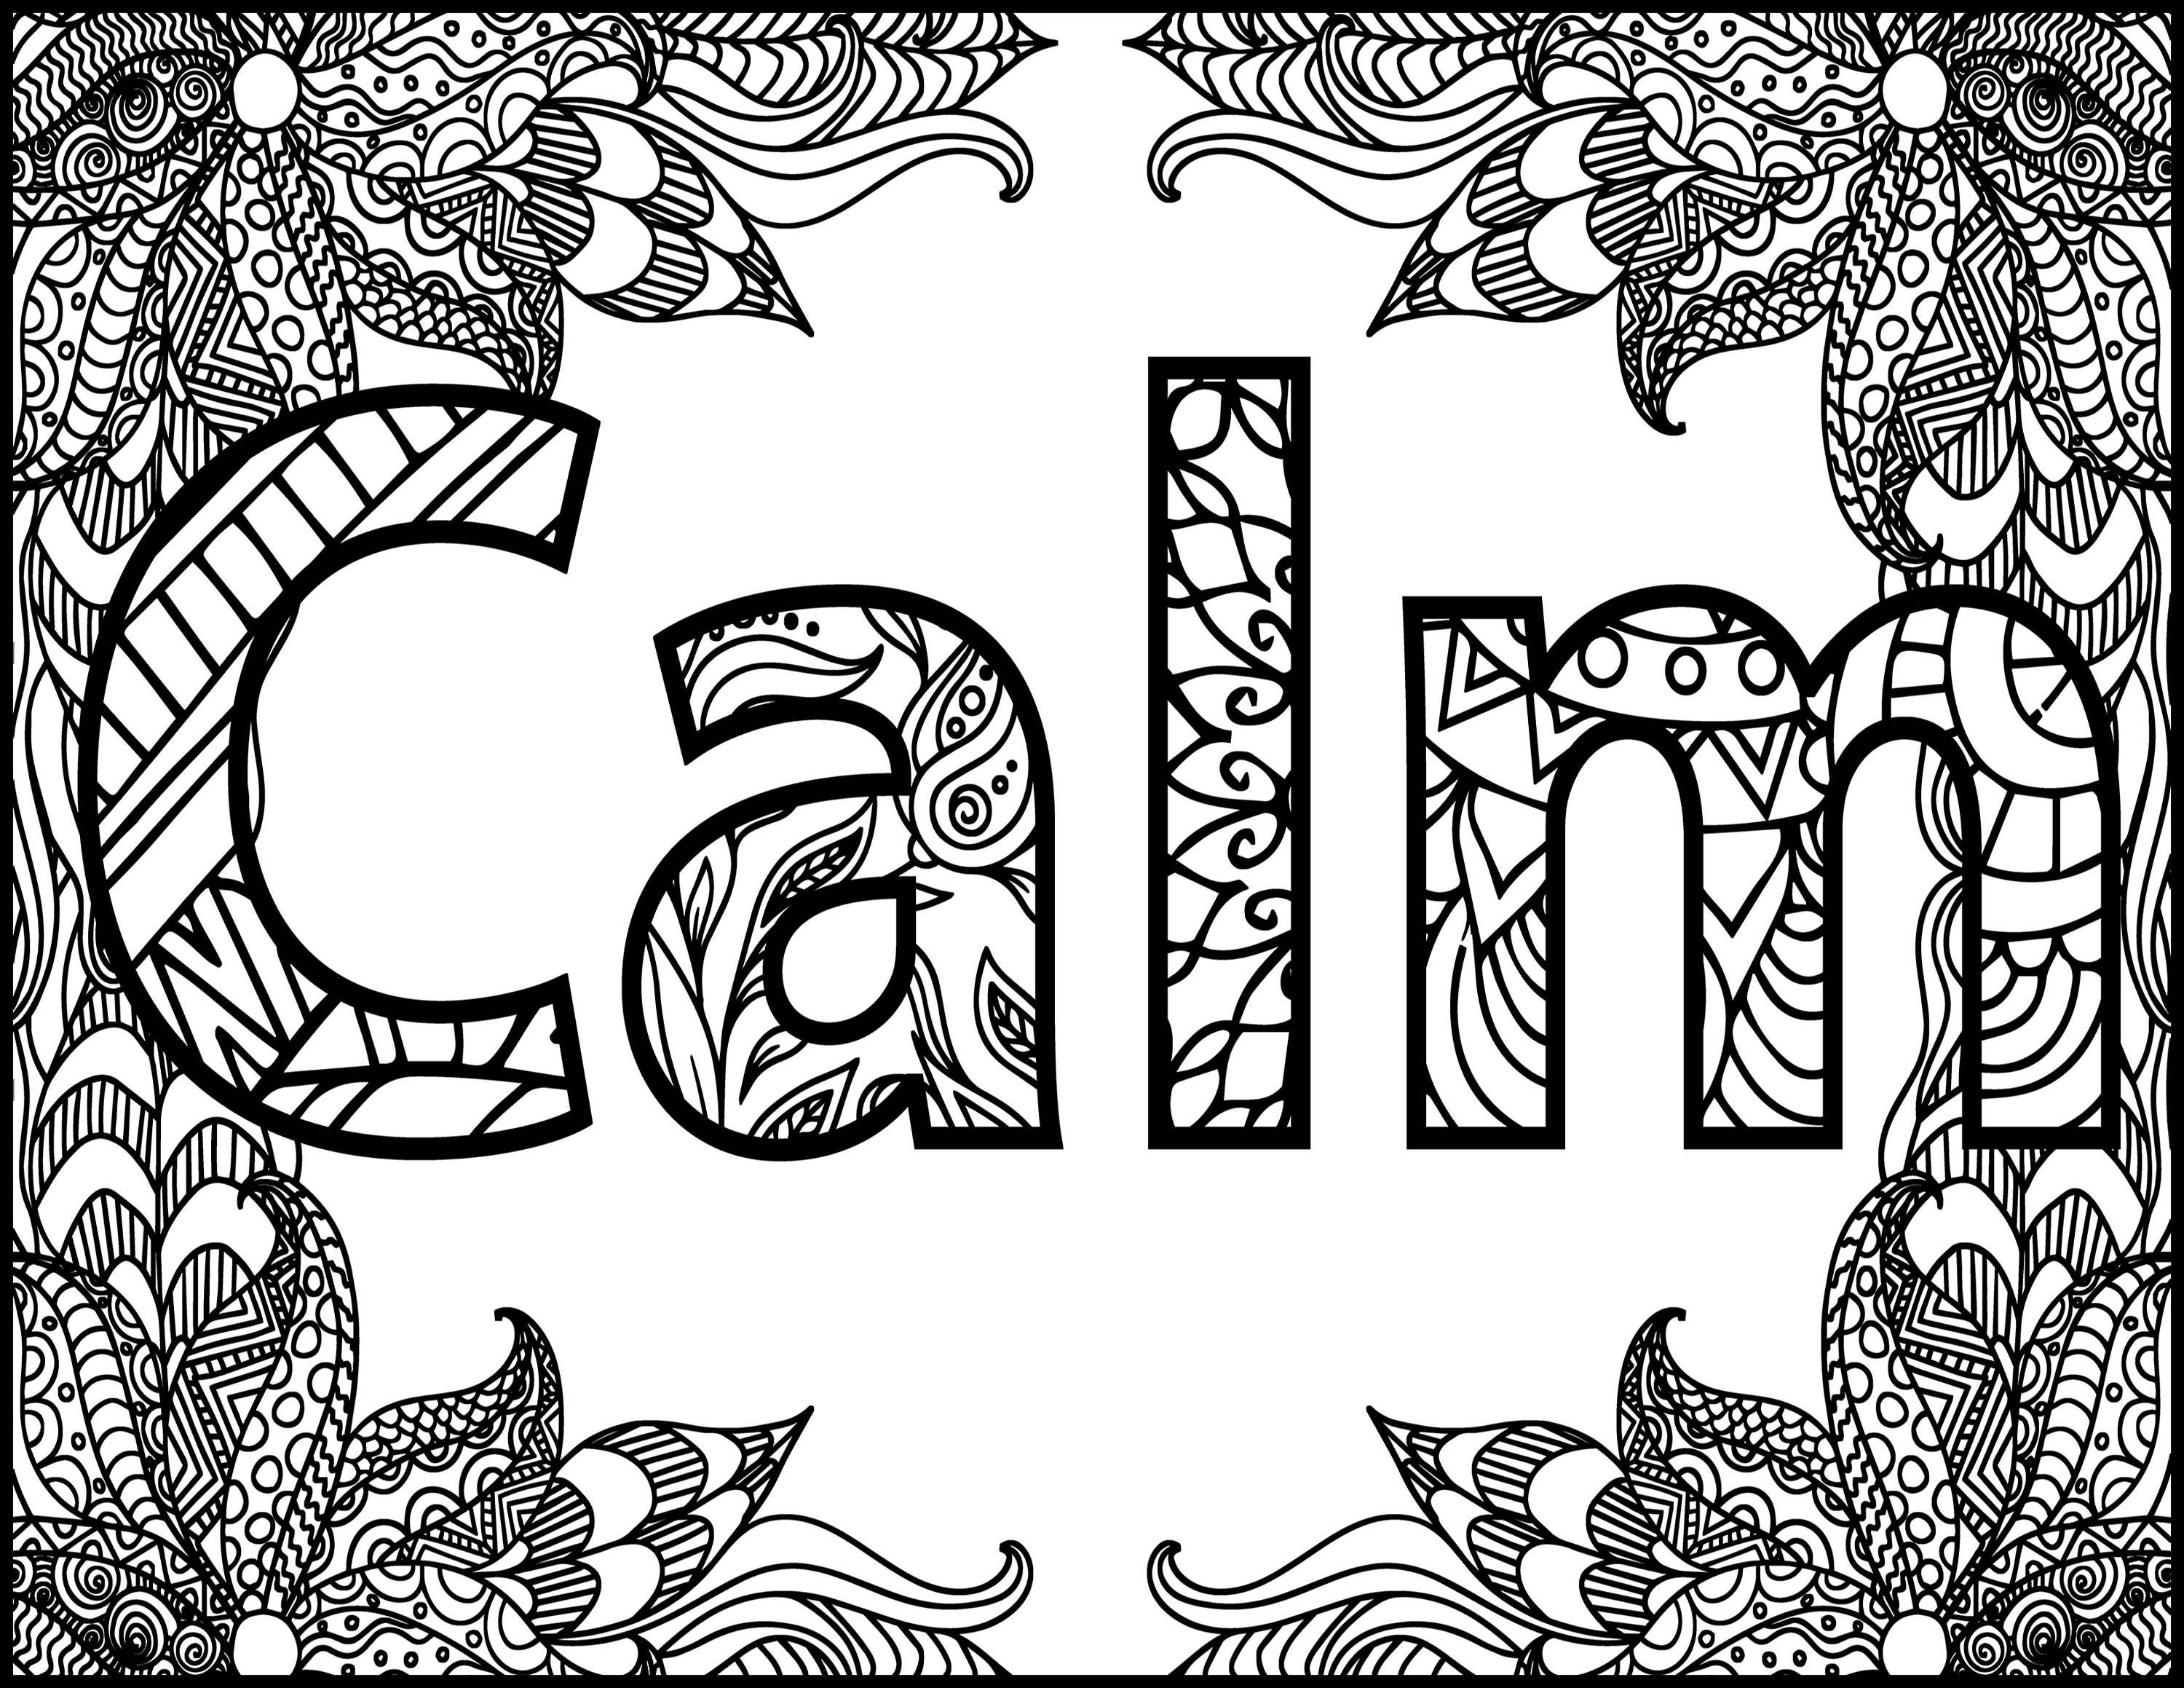 Positive Word Coloring Page Calm Positive Adult Coloring ...